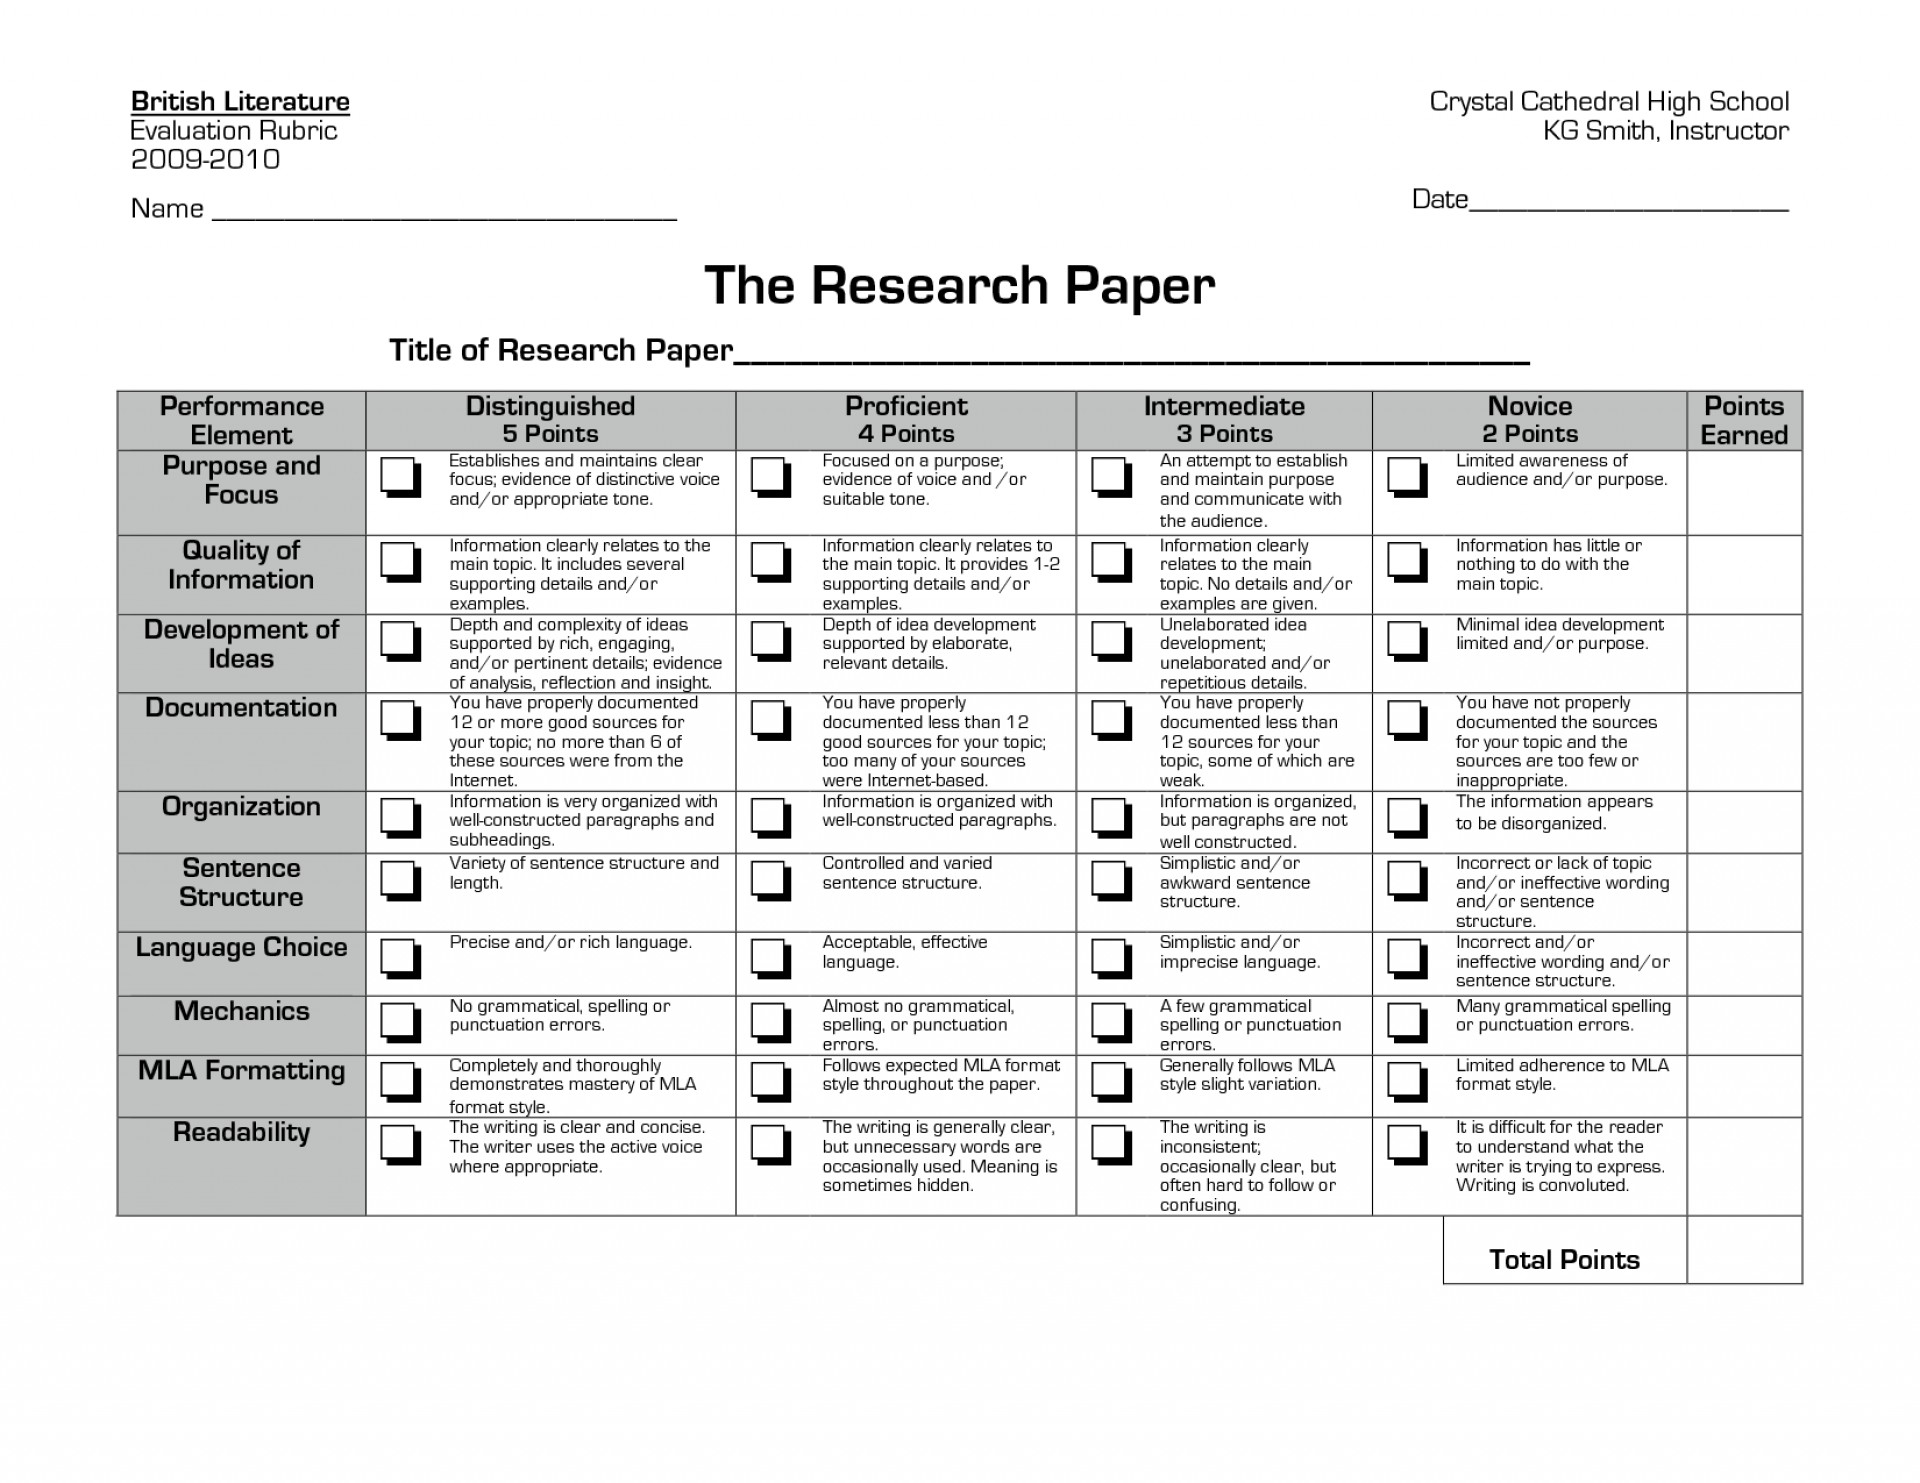 017 Research Paper Rubric High School Impressive Papers Assignment Sheet Topics Pdf 1920